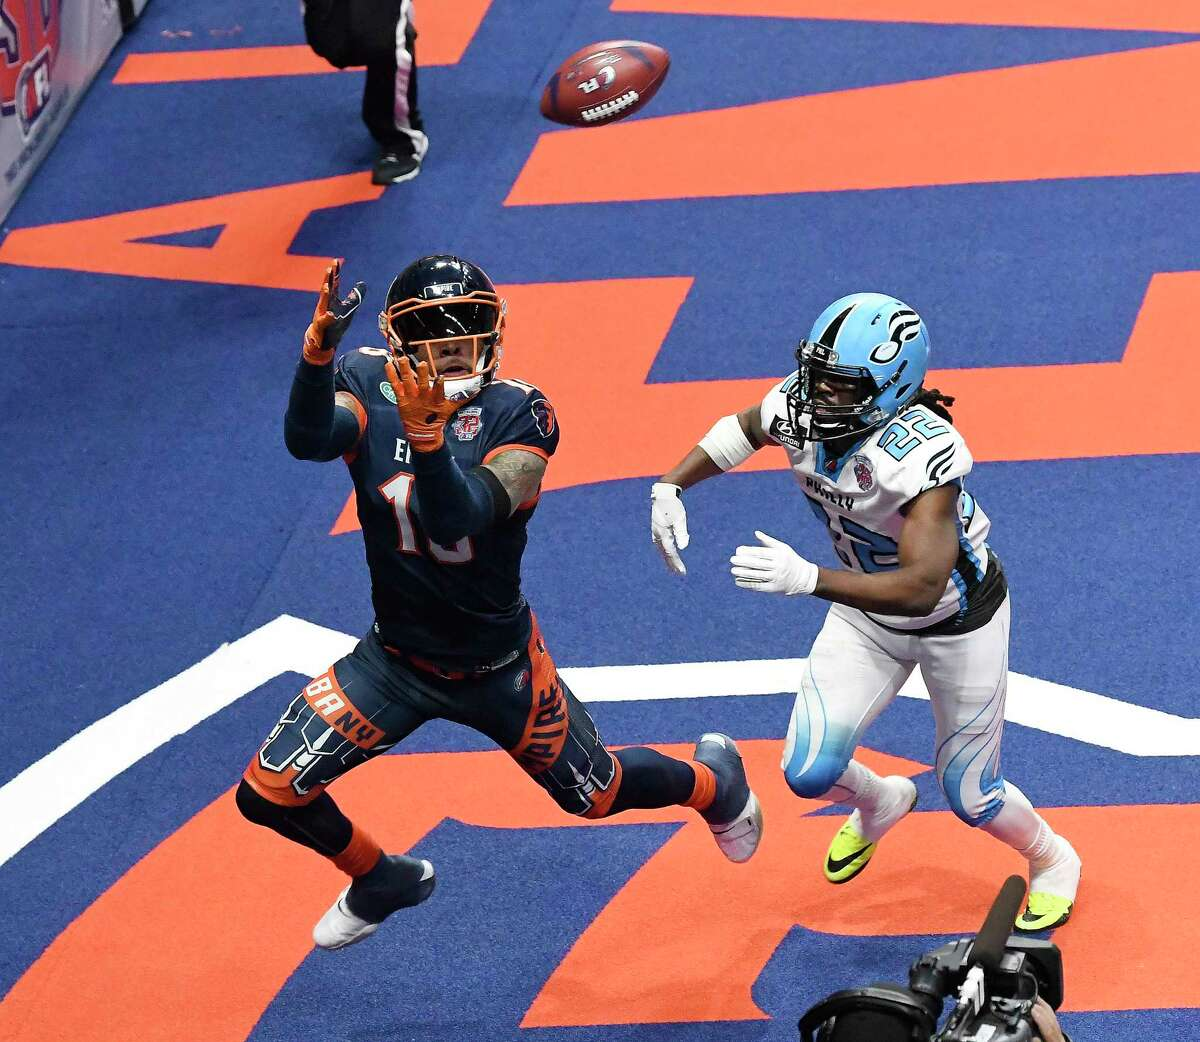 Albany Empire's Quentin Sims (18) makes a catch for touchdown in front of Philadelphia Souls' Dwayne Hollis (22) (22)during the ArenaBowl XXXII football game at the Times Union Center, Sunday, Aug. 11, 2019, in Albany, N.Y. (Hans Pennink / Special to the Times Union)